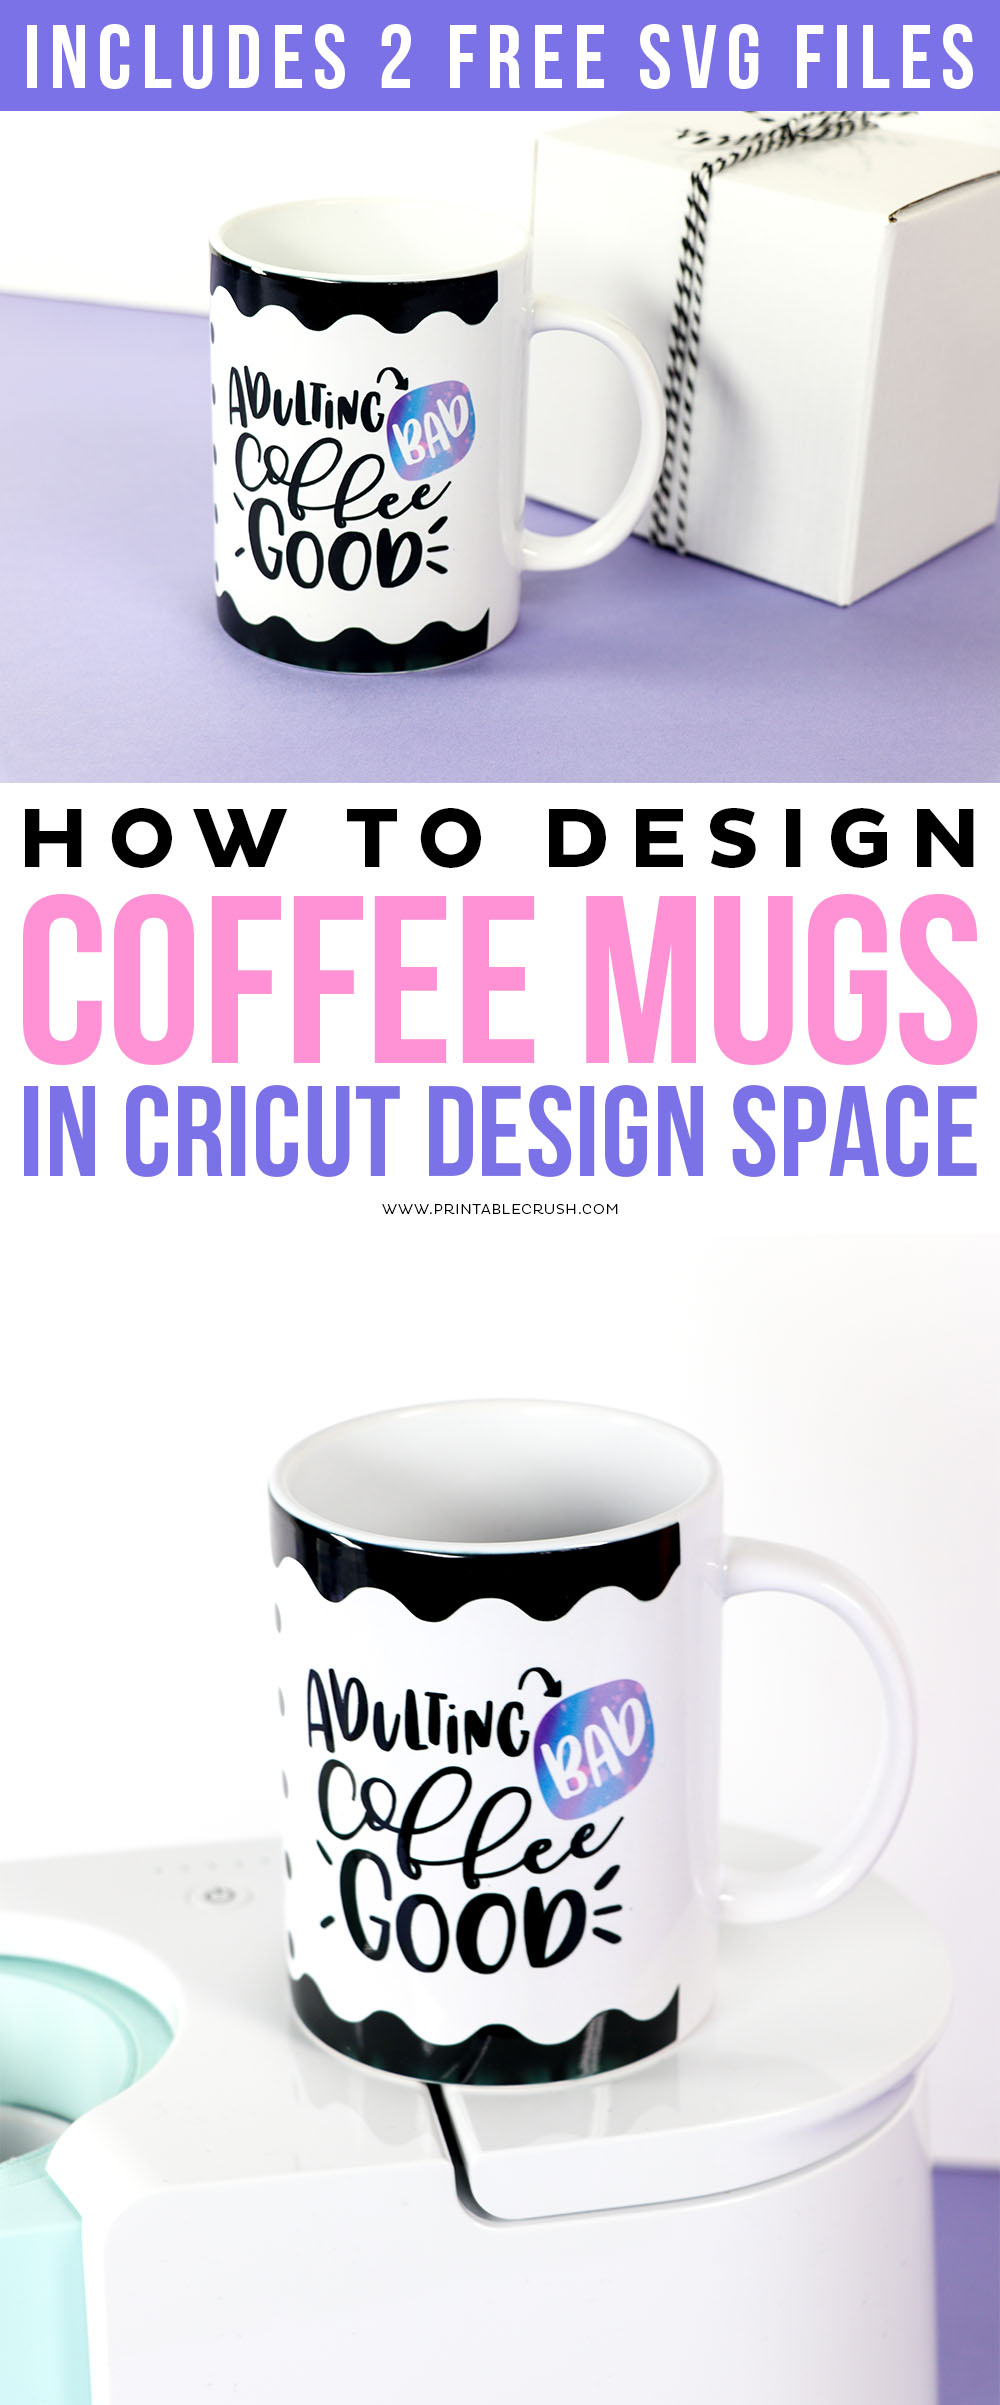 Free Mug SVG Files for the Cricut MugPress - How to Design your own mugs in Cricut Design Space with the MugPress - Printable Crush